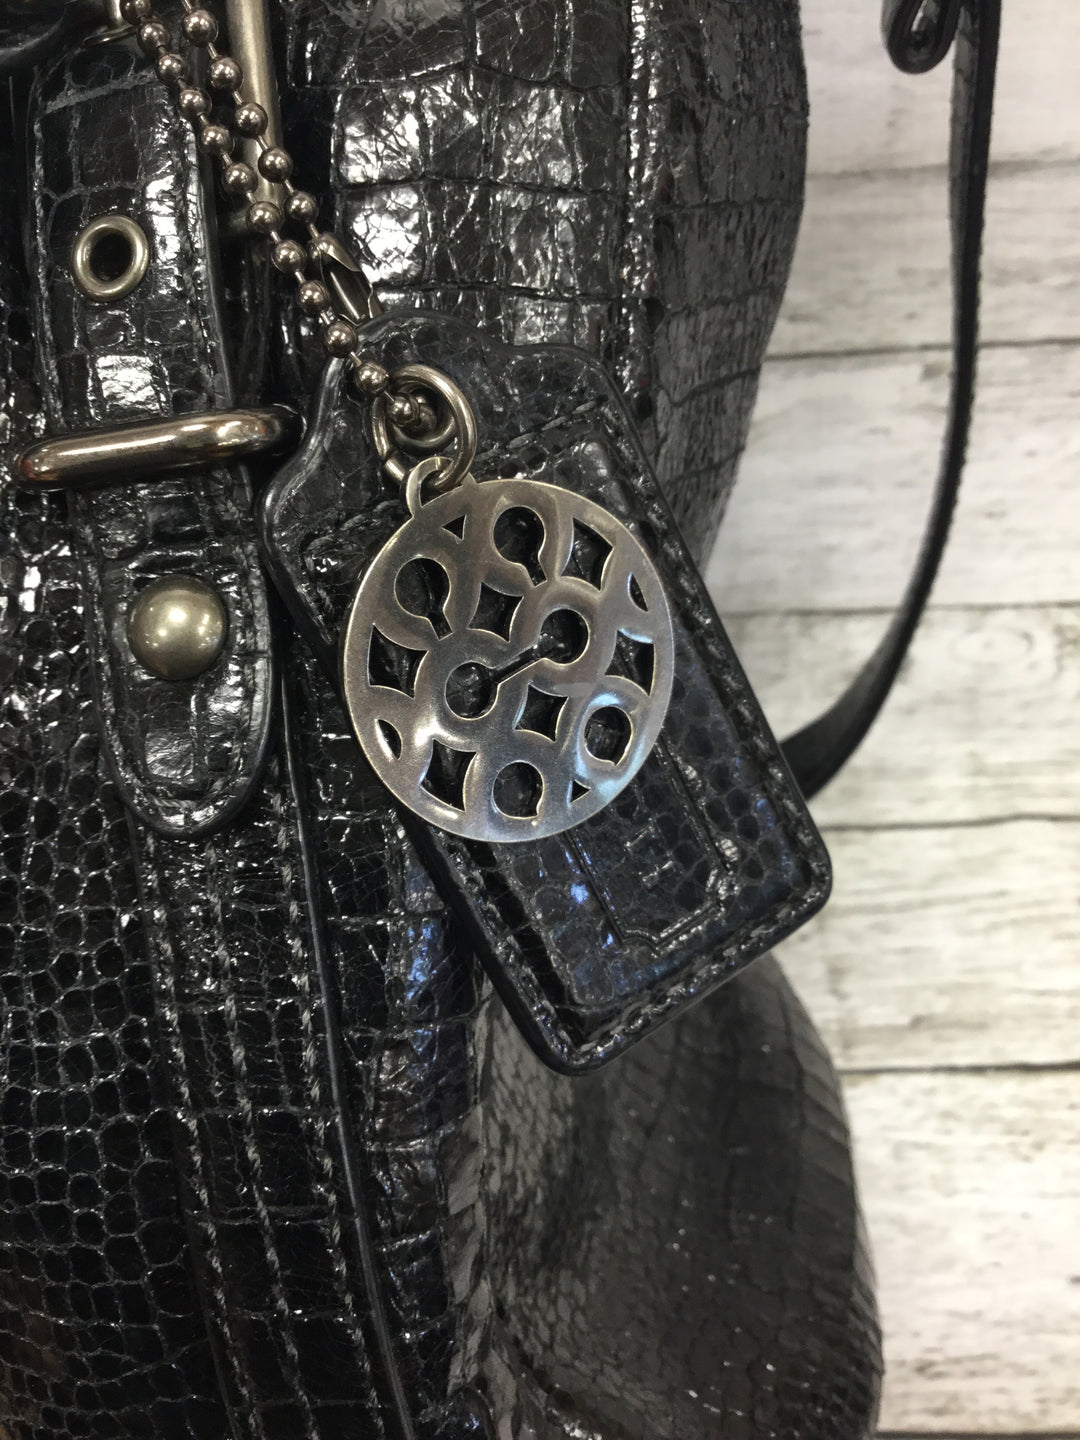 Photo #5 - BRAND: COACH , STYLE: HANDBAG , COLOR: BLACK , SIZE: LARGE , OTHER INFO: ALEXANDRA , SKU: 127-4942-3300, , THIS LEATHER COACH HANDBAG IS IN VERY GOOD CONDITION WITH SOME MINOR WEAR. THE INSIDE AND OUTSIDE ARE BOTH VERY CLEAN.